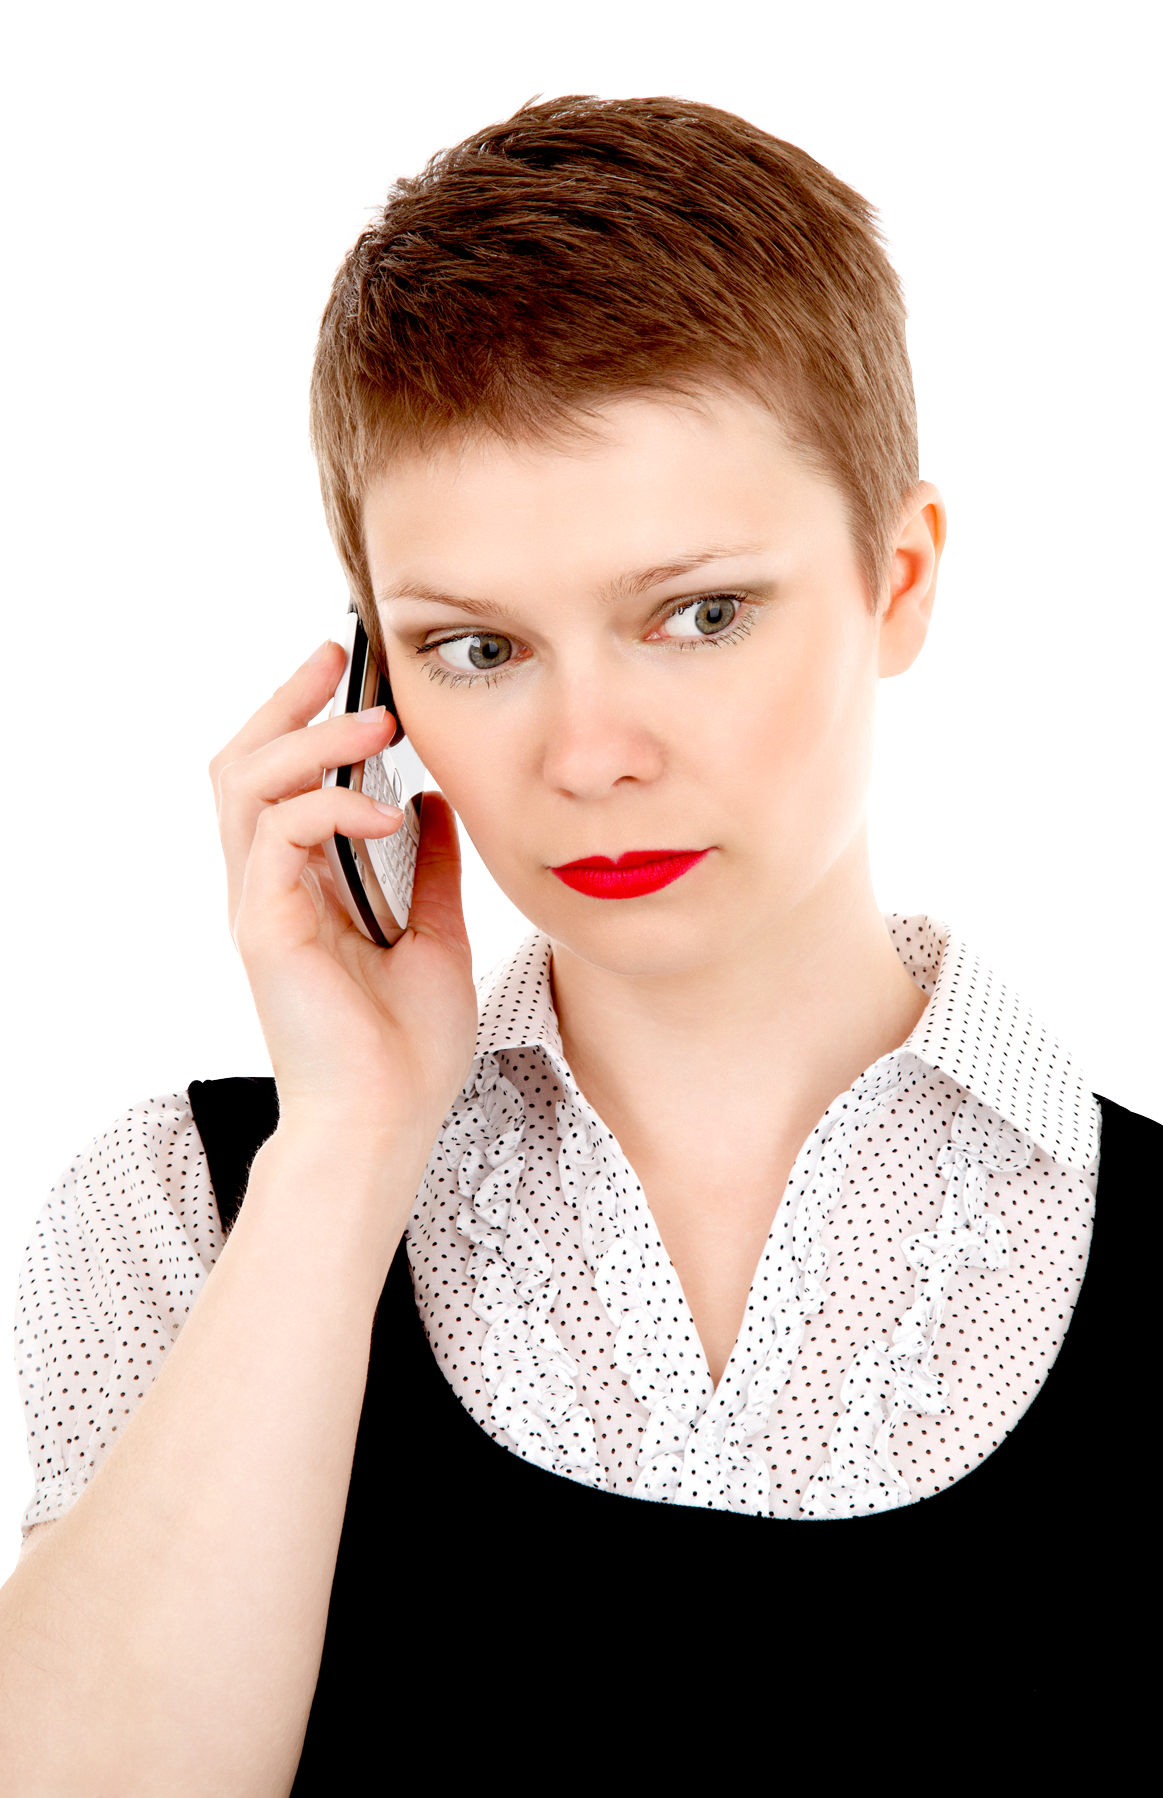 Business-Woman-on-Mobile-Phone-PNG-image